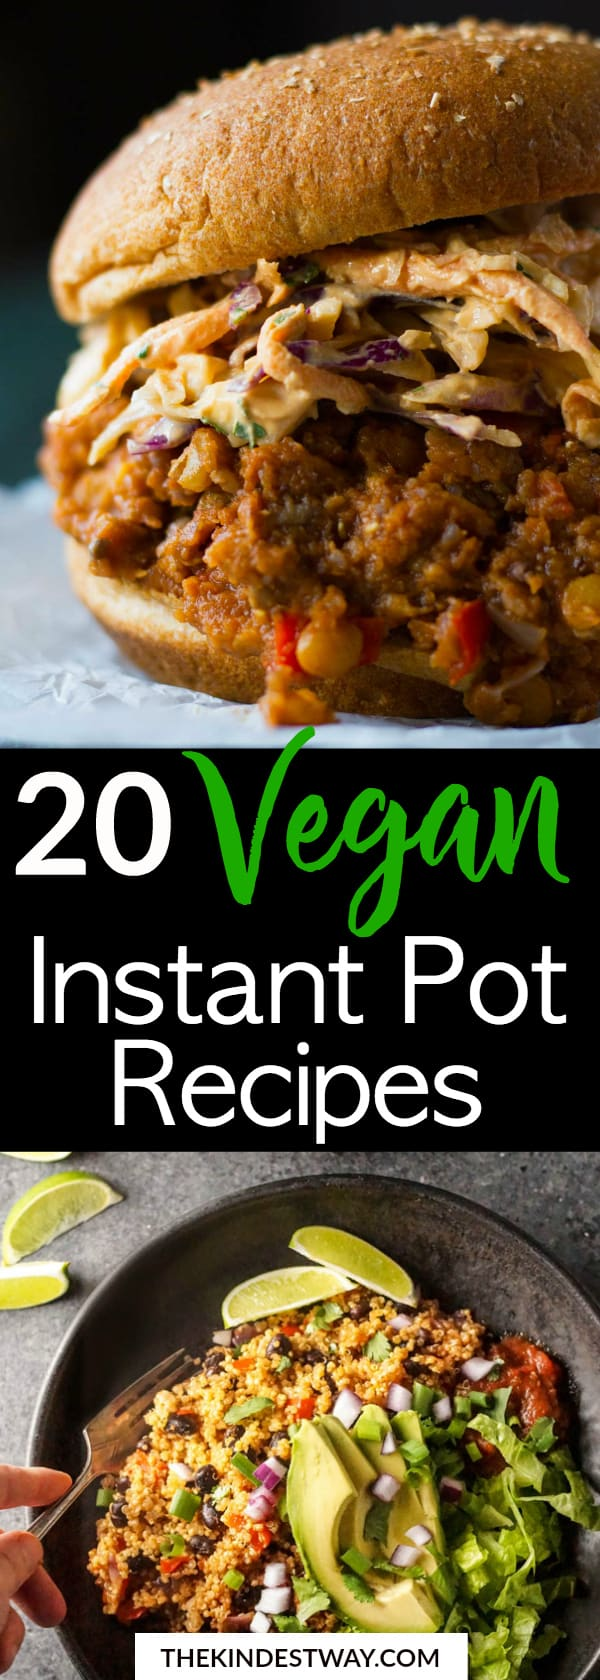 20 Best Vegan Instant Pot Recipes to try today! Vegan Instant Pot Recipes | Instant Pot Vegan Recipes | Vegan Crock Pot Recipes | Vegan Recipes for Instant Pot #vegan #instantpot #veganinstantpot #recipes #veganrecipes